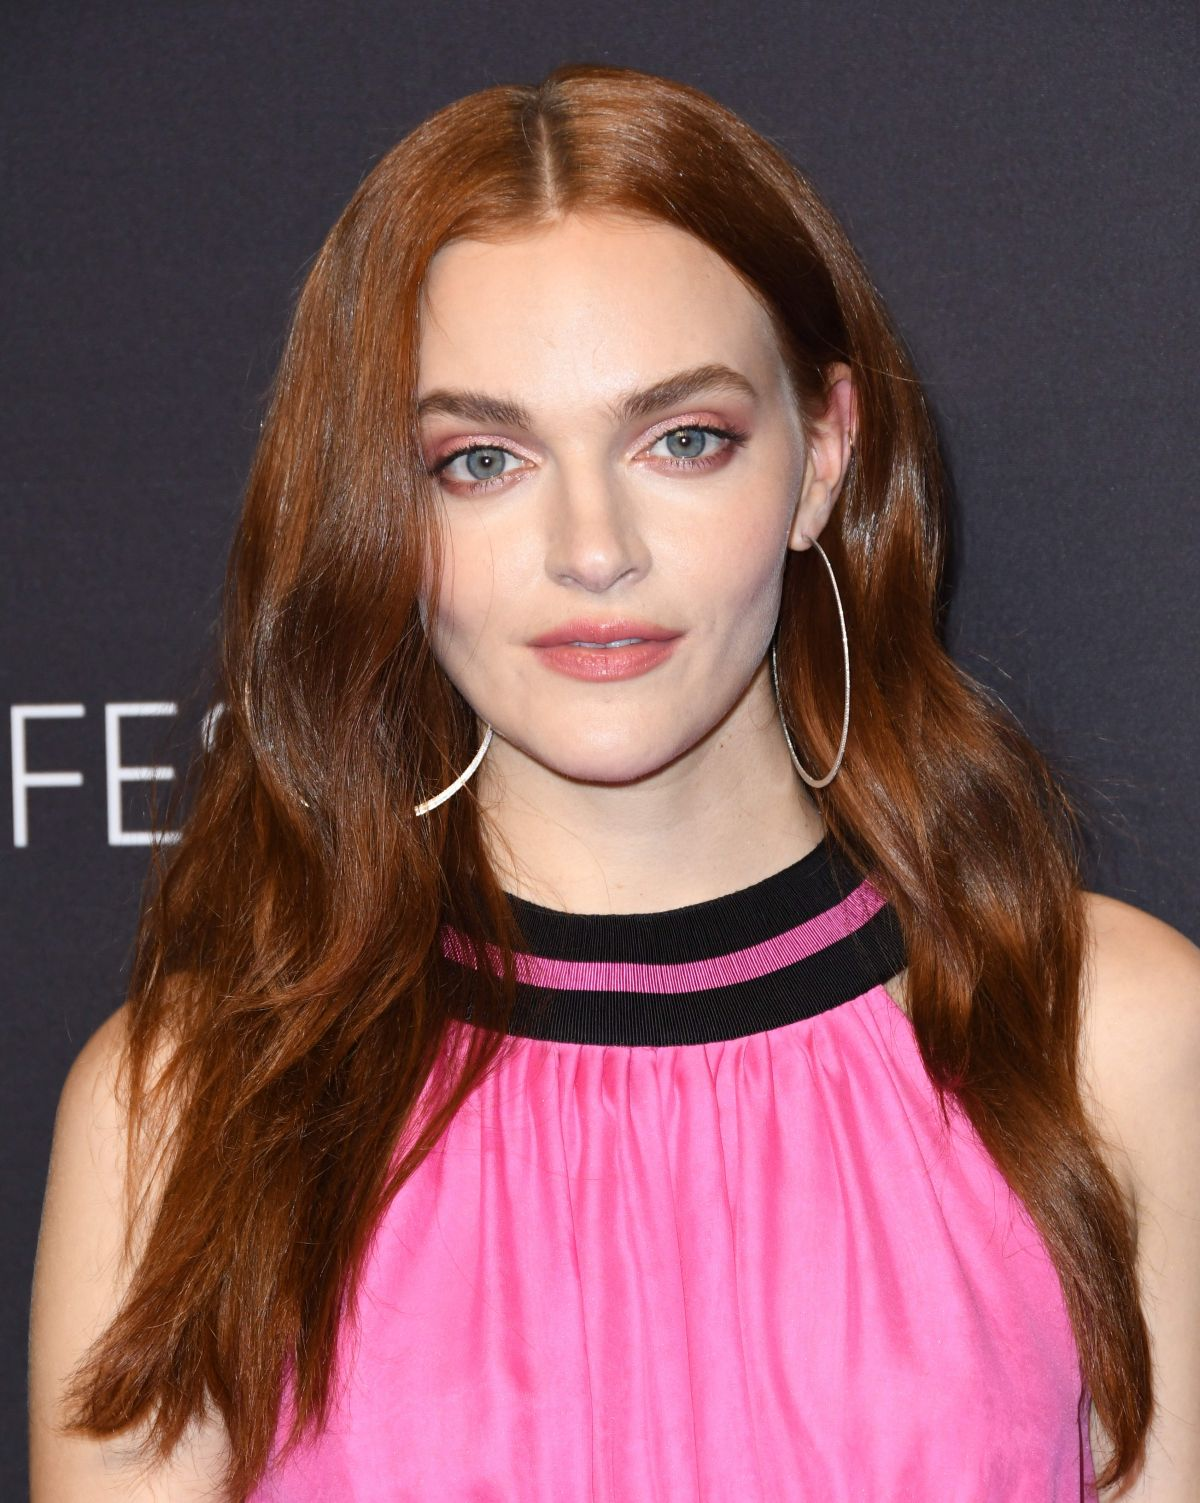 ICloud Madeline Brewer nudes (75 photos), Pussy, Hot, Instagram, lingerie 2006